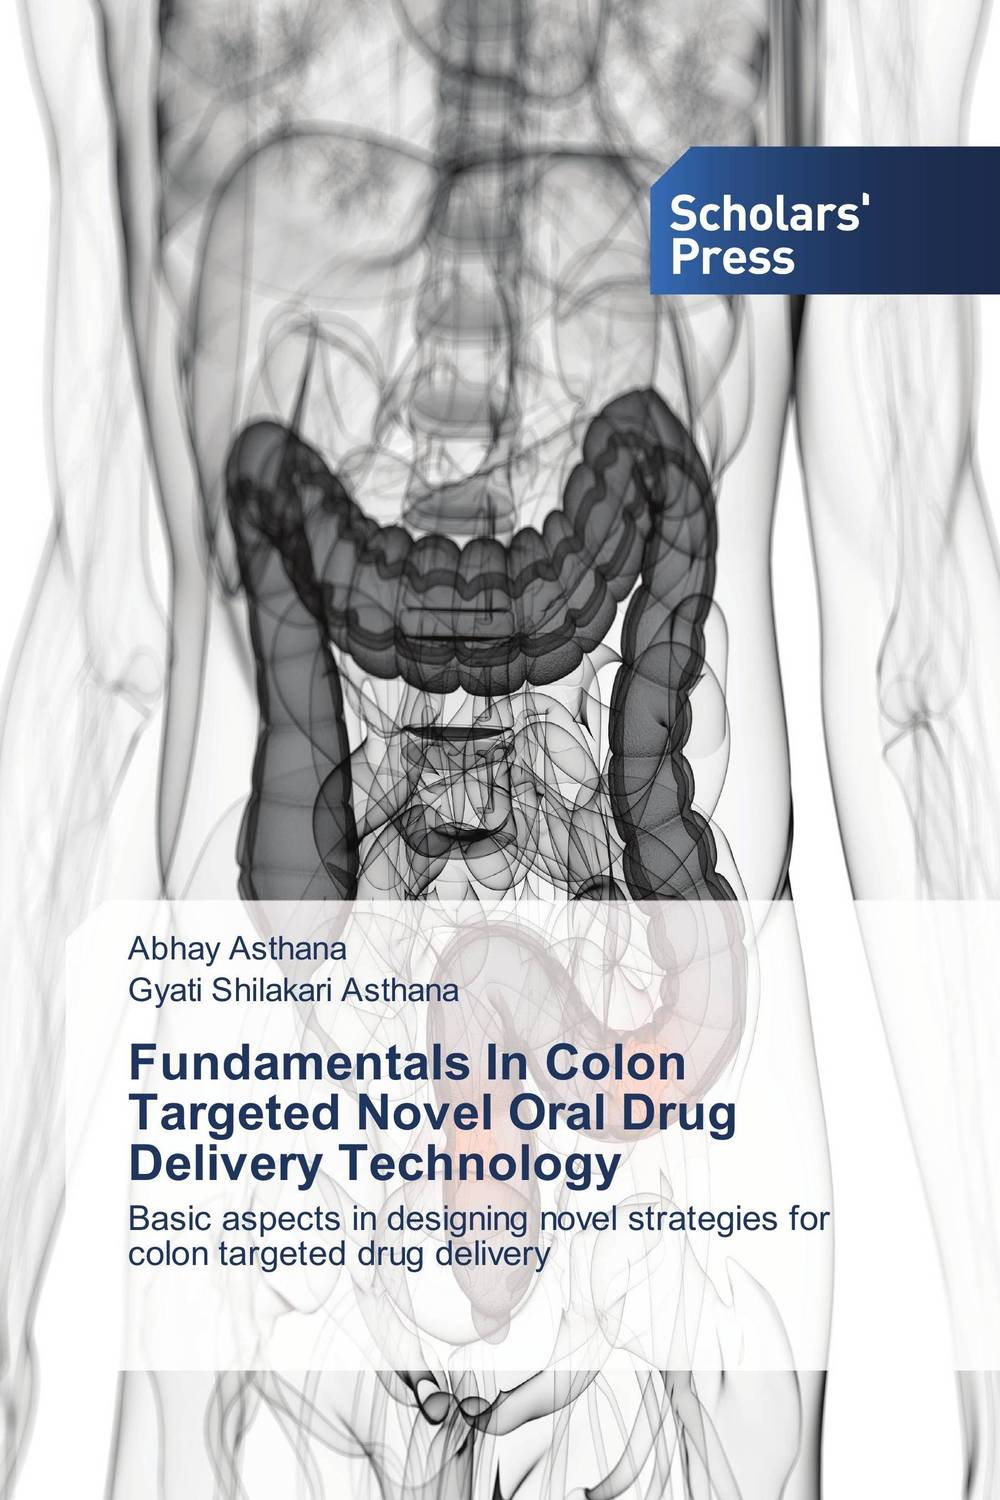 Fundamentals In Colon Targeted Novel Oral Drug Delivery Technology deepika singh and amita verma floating drug delivery system a novel technology